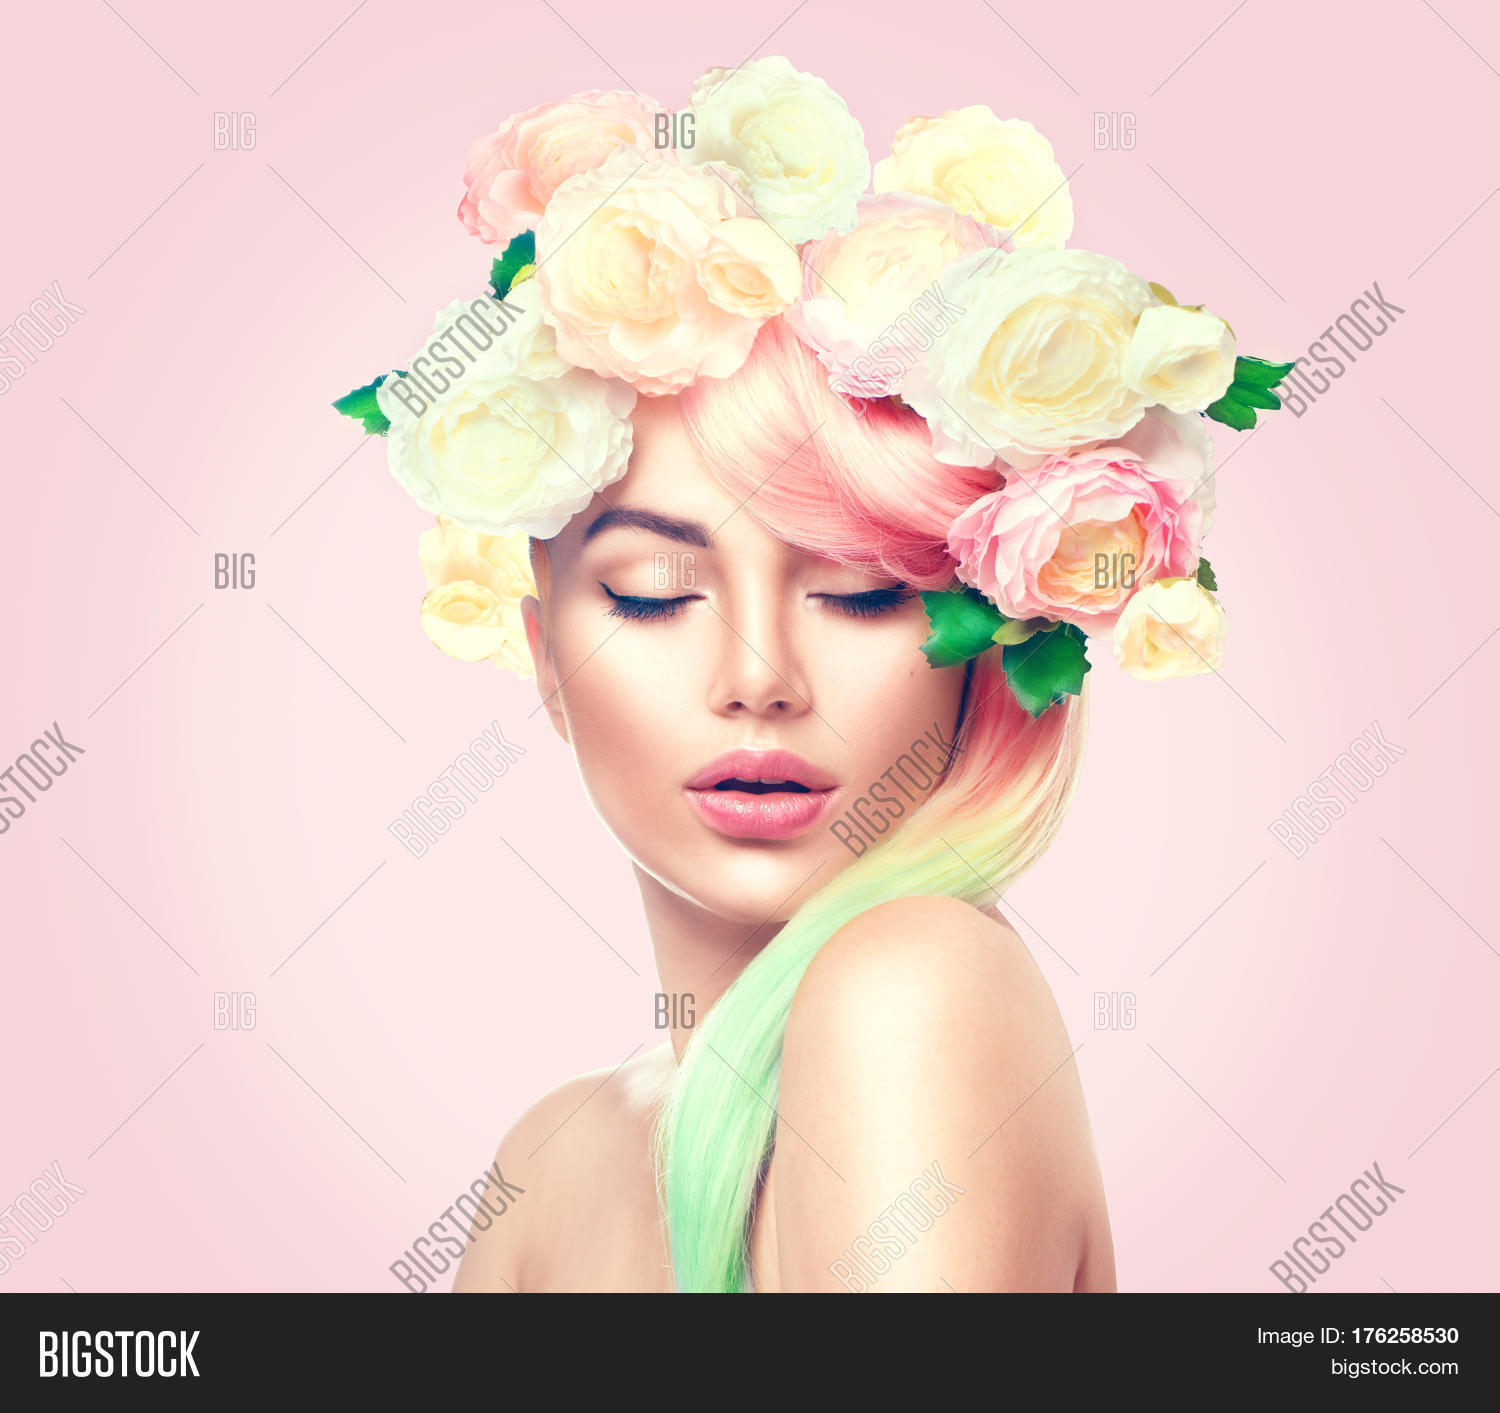 Spring woman beauty summer model image photo bigstock beauty summer model girl with colorful flowers wreath and colorful hair flowers izmirmasajfo Gallery